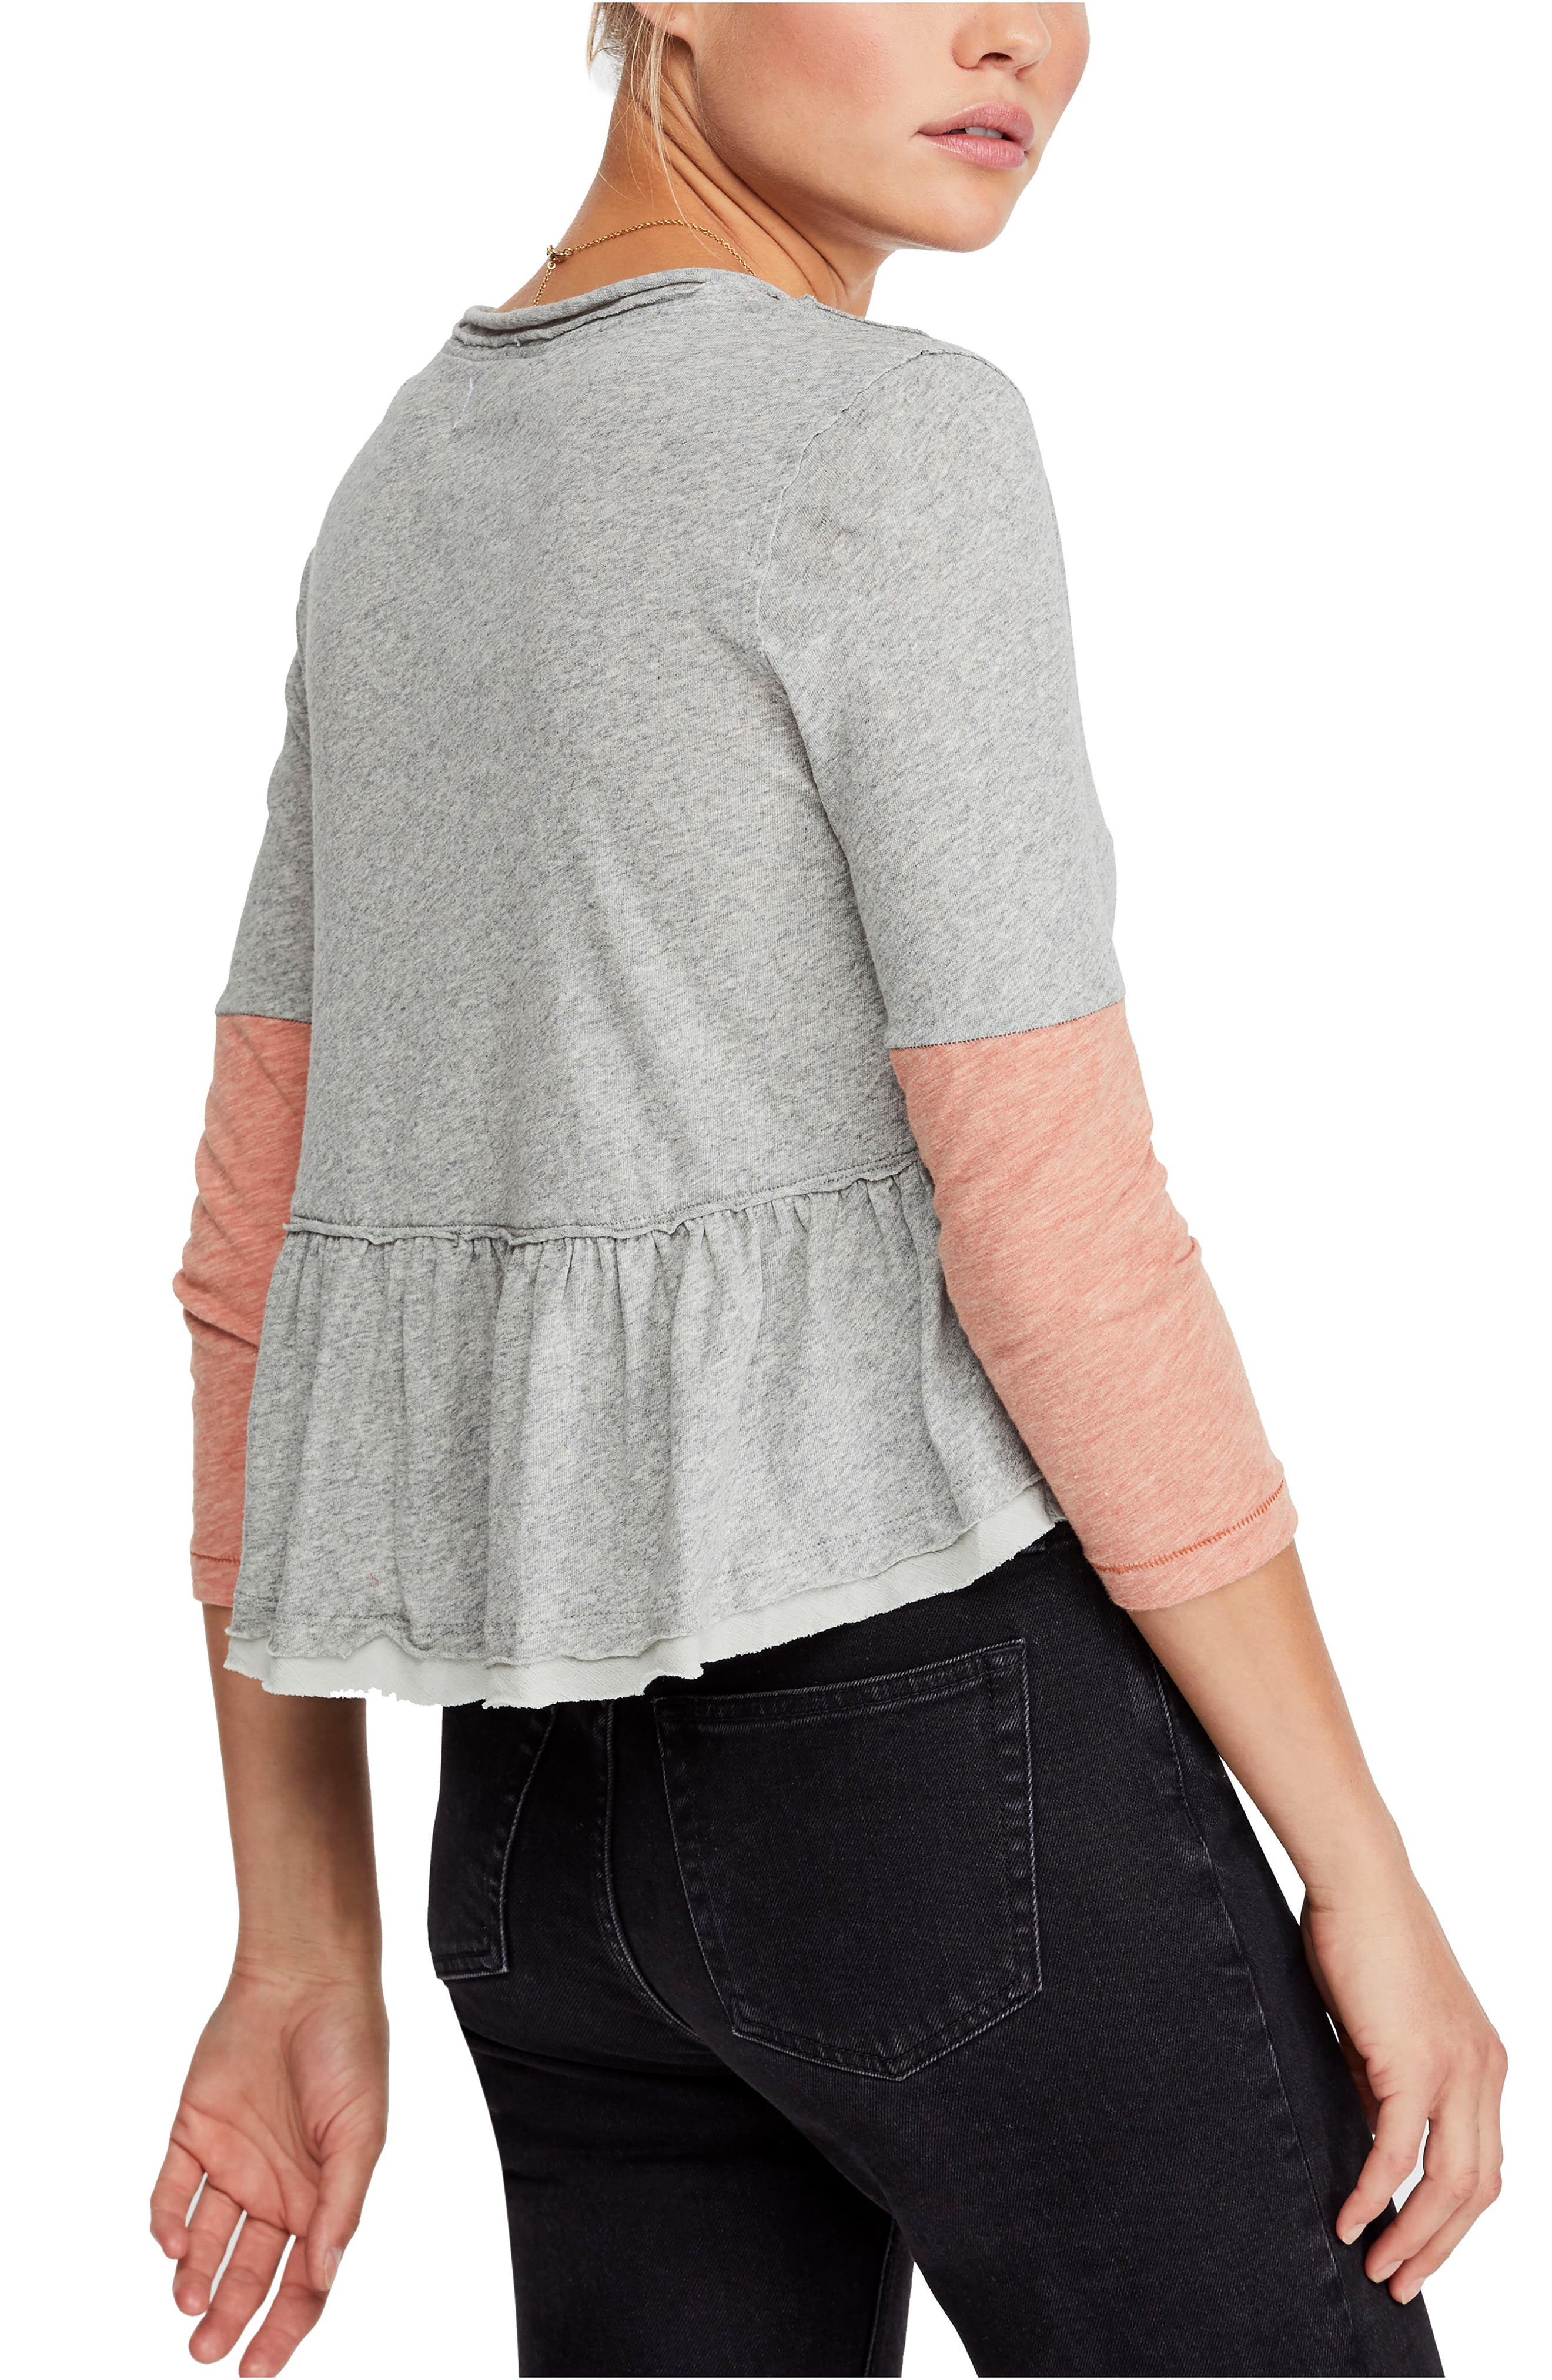 FREE PEOPLE, Heart of Mine Colorblock Cotton Top, Alternate thumbnail 2, color, 030